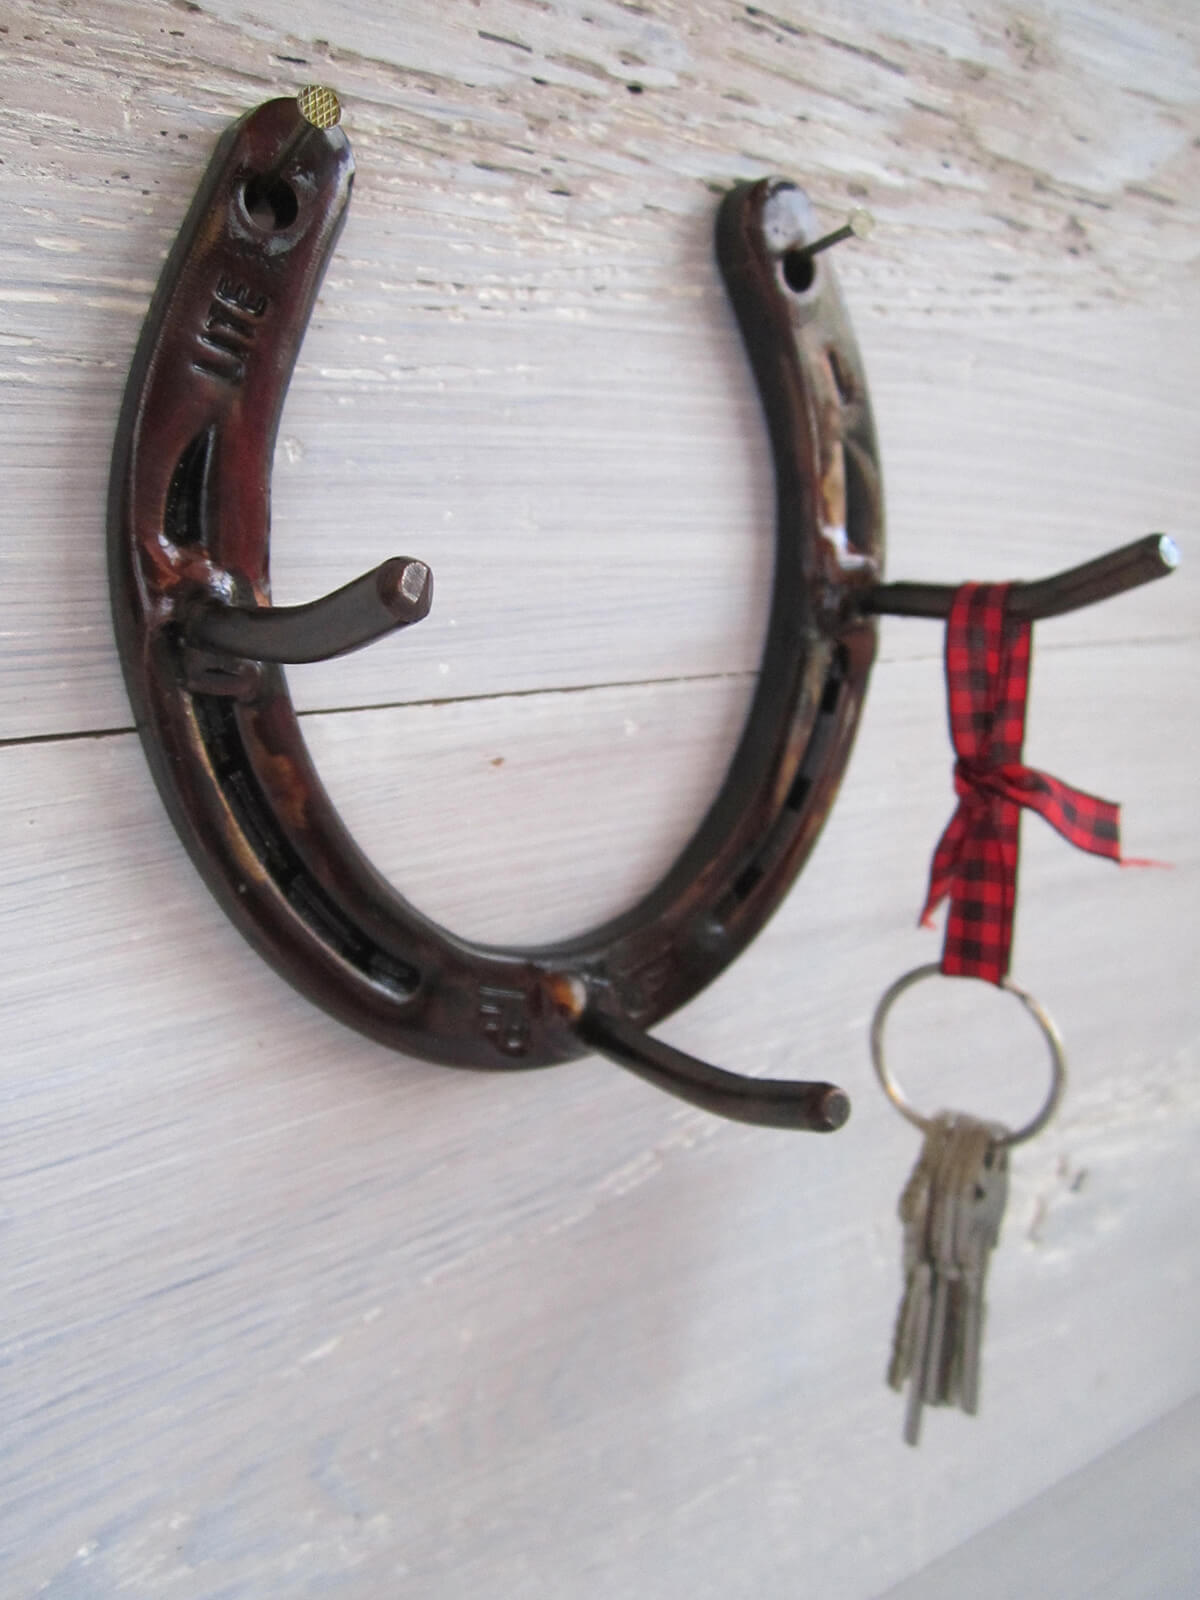 Rustic Horseshoe Key Rack